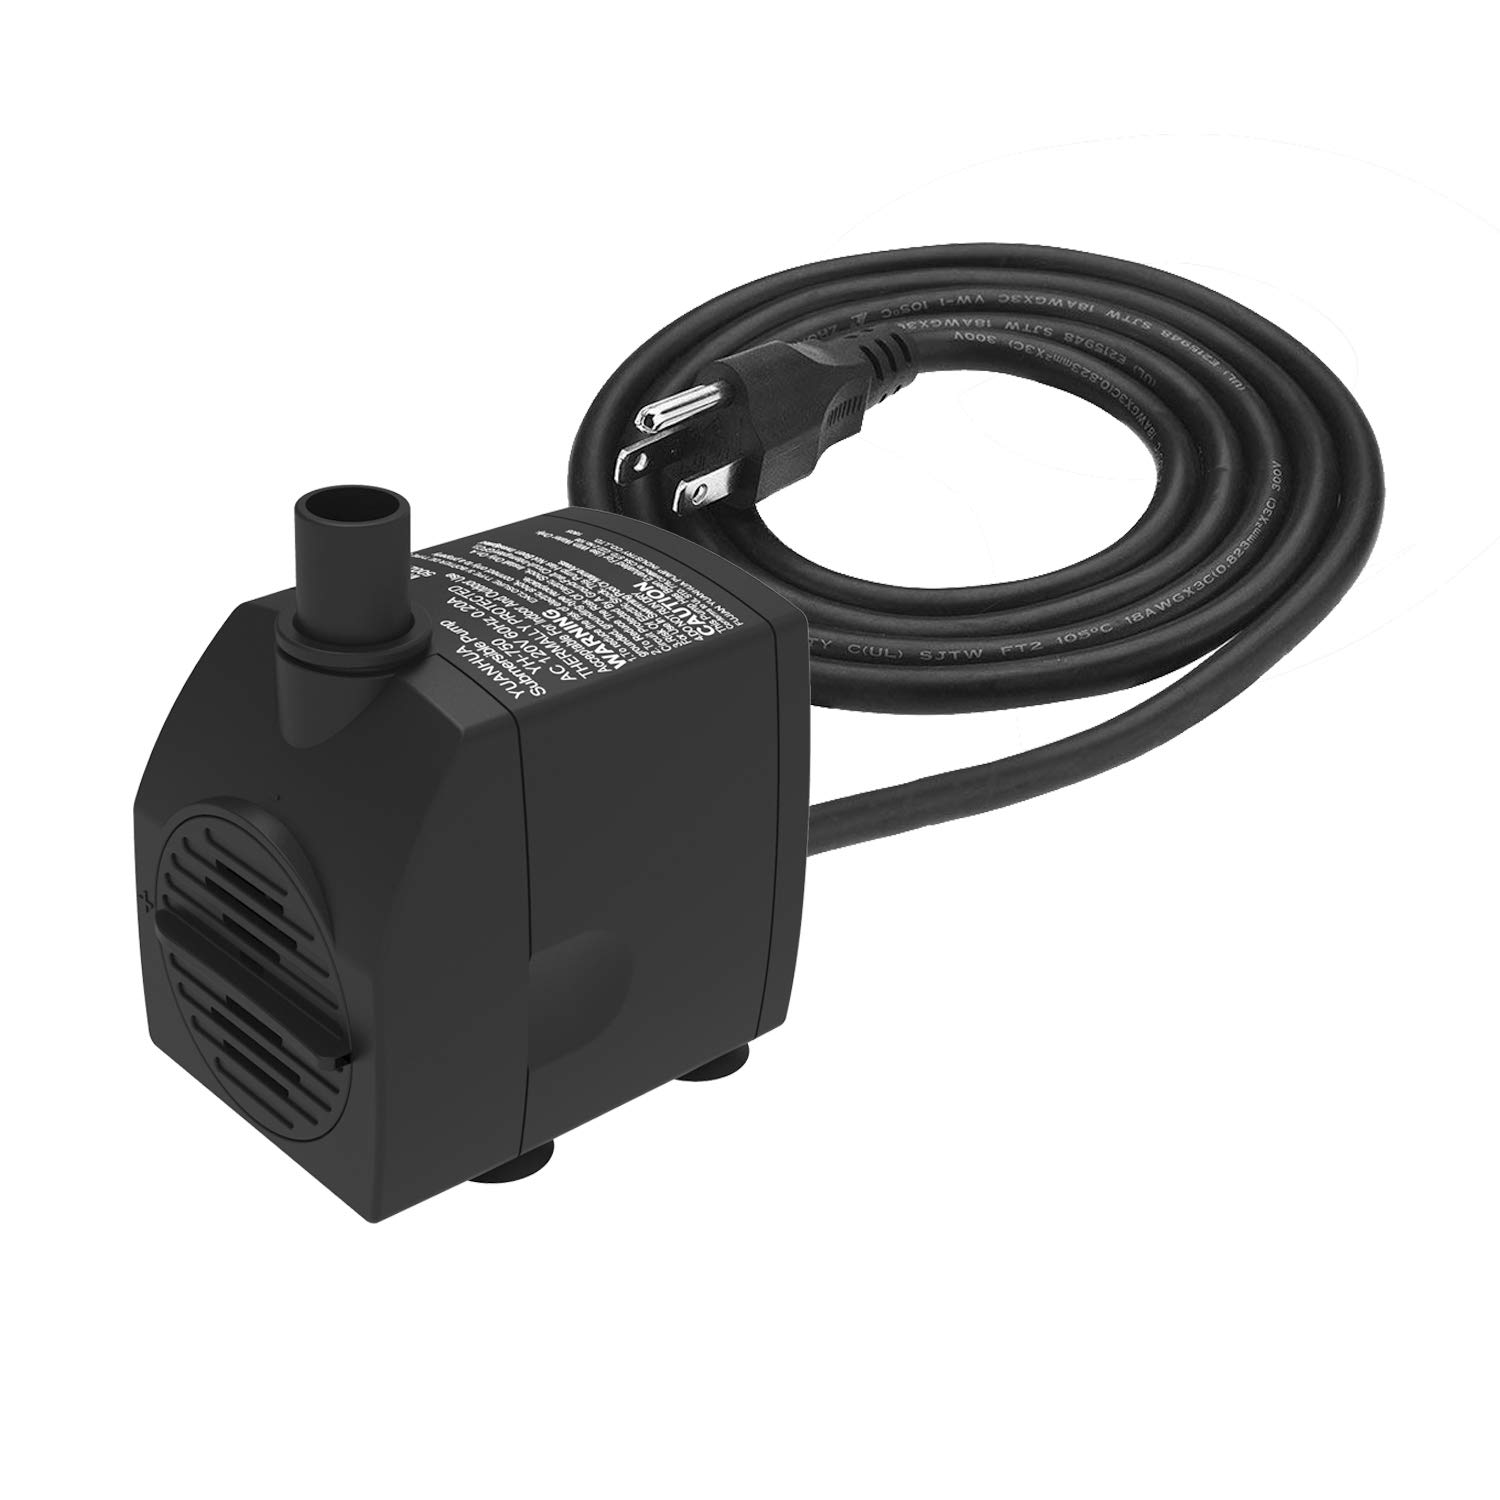 Submersible Water Pump 6.1ft Power Cord 200GPH Ultra Quiet Pump with Dry Burning Protection for Fountains, Hydroponics, Ponds, Statuary, Aquariums & More by yuanhua